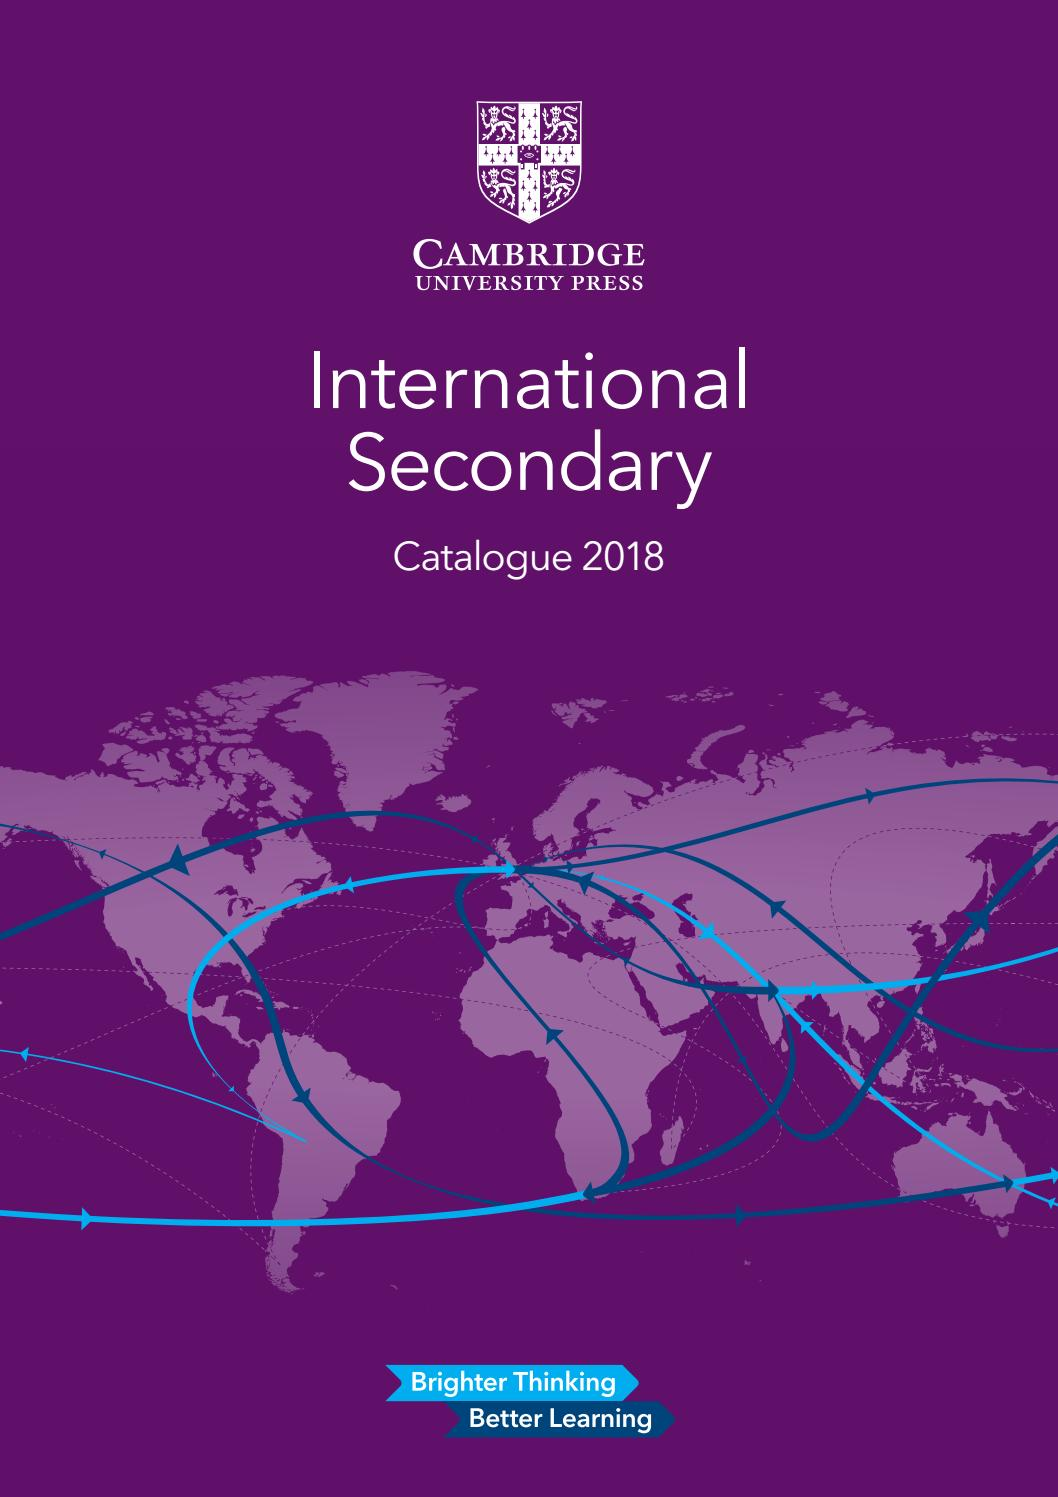 International Secondary Catalogue 2018 By Cambridge University Press Grade Bitesize Physics Generation Of Electricity Revision Page 3 Education Issuu